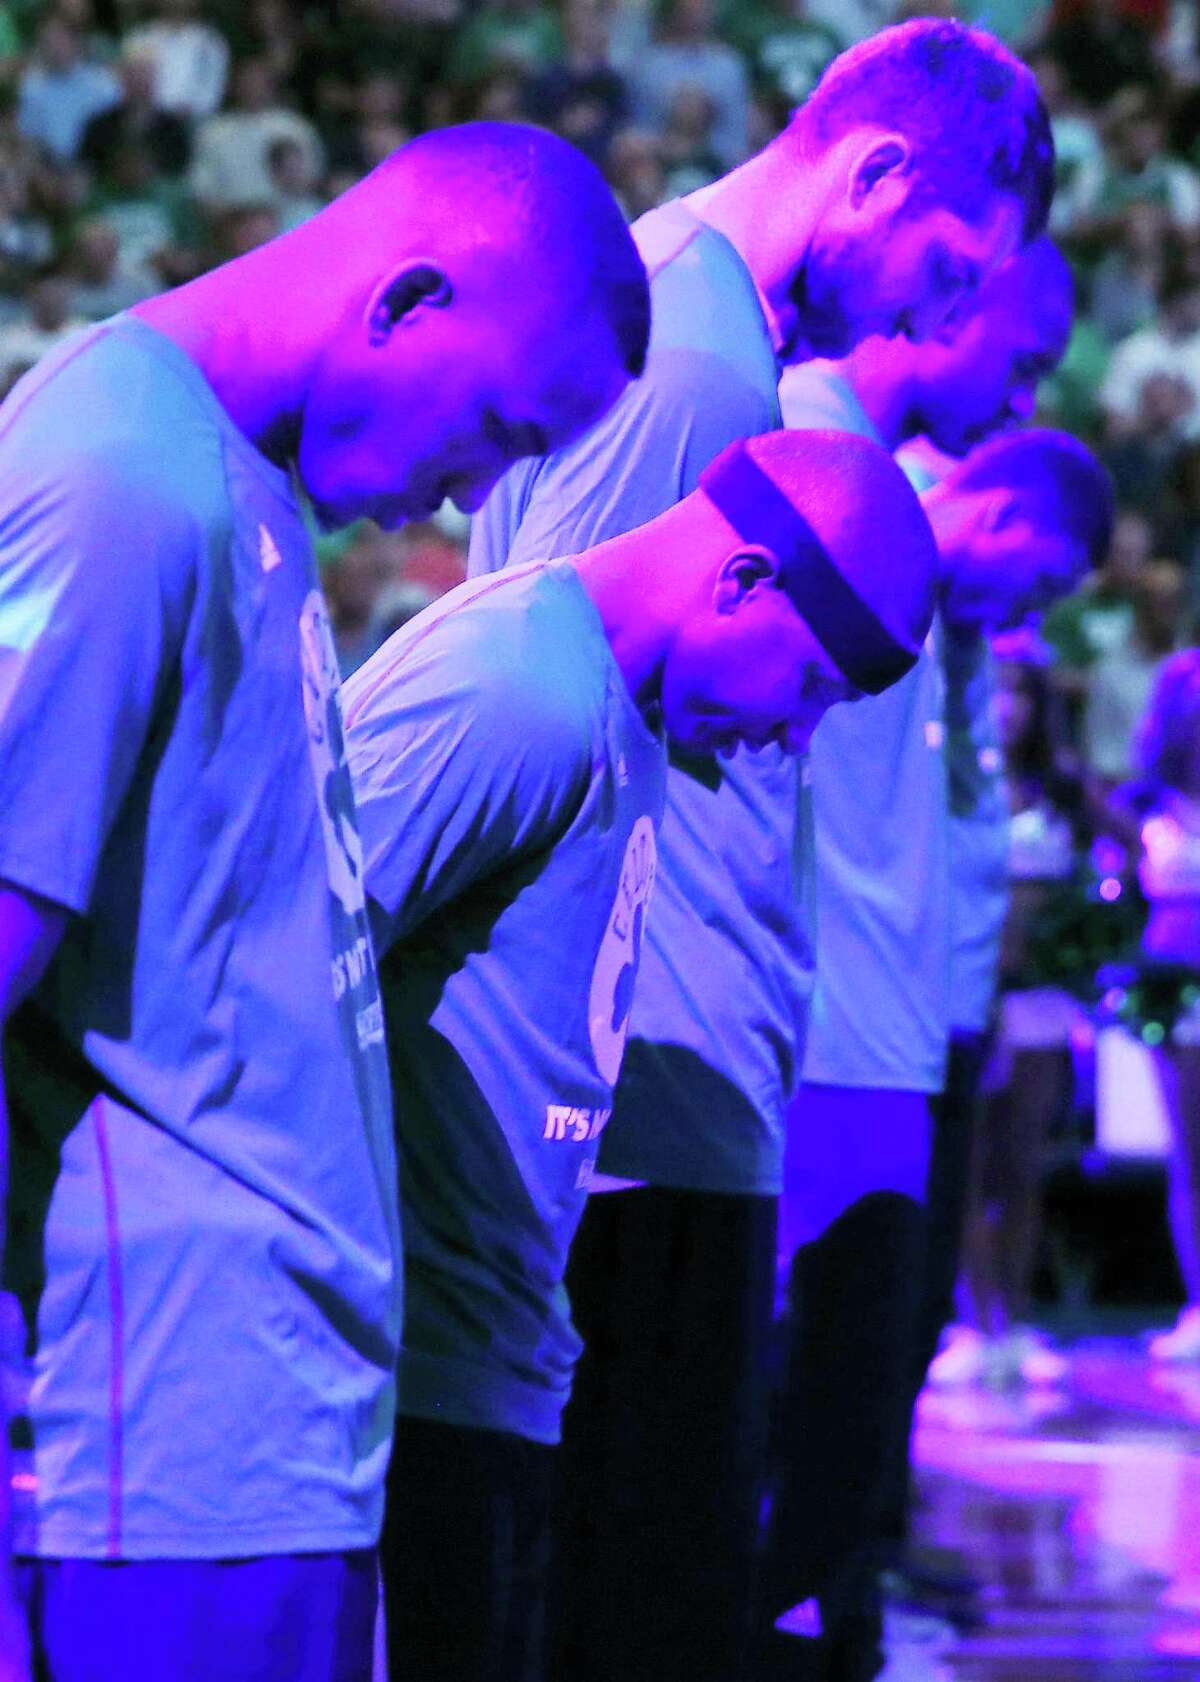 The Celtics' Isaiah Thomas and teammates bow their heads during a moment of silence for Thomas' sister Chyna before Sunday's game.